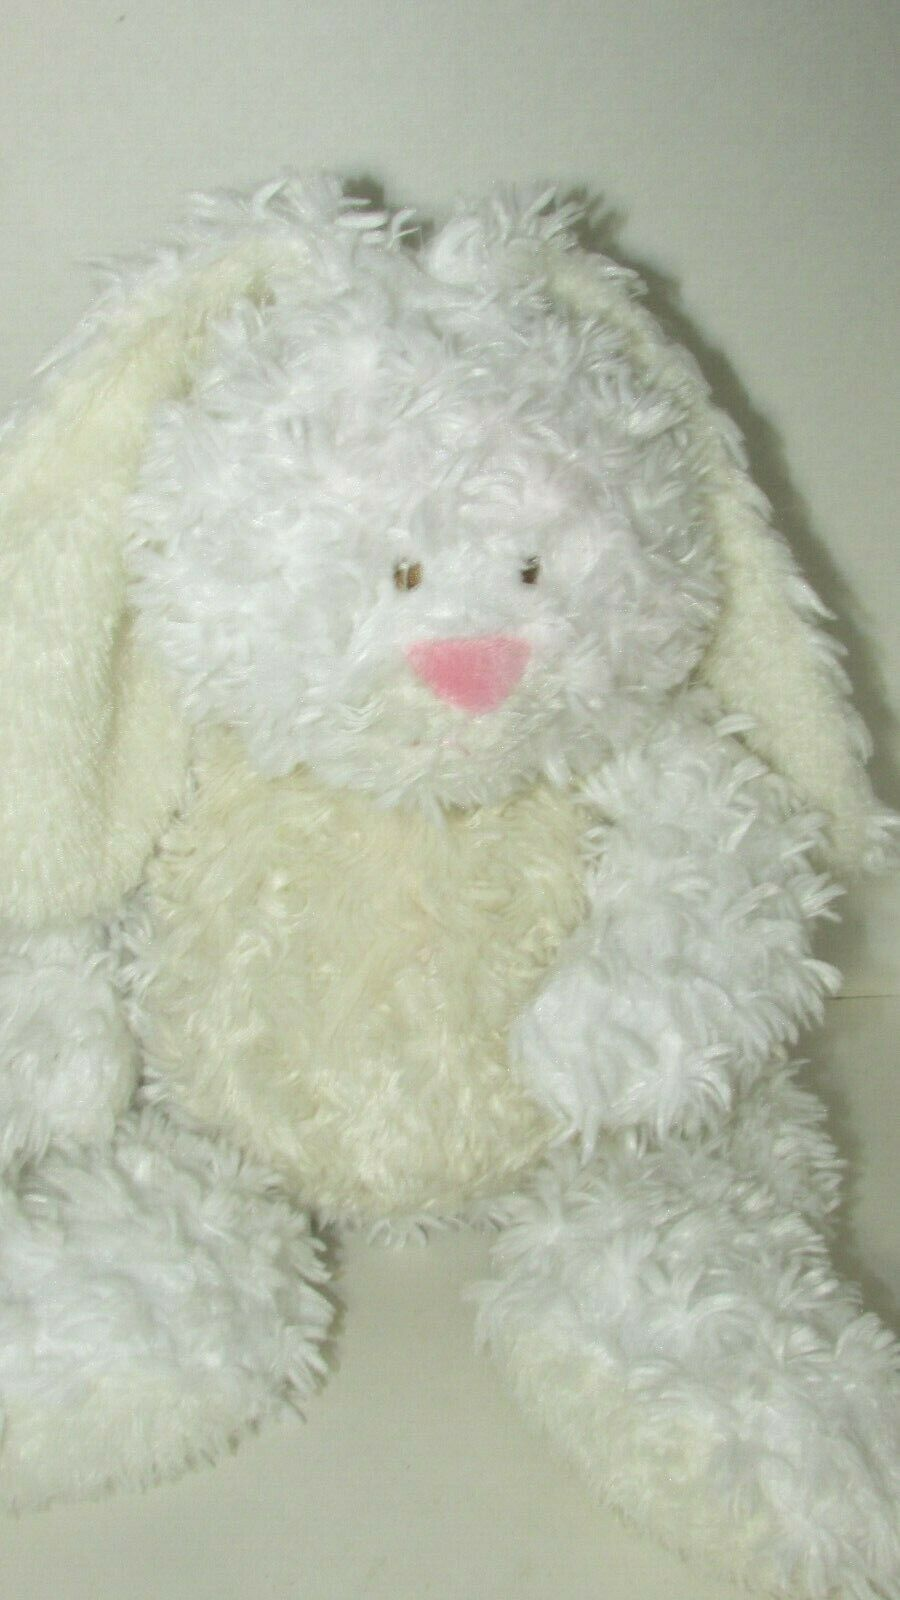 Primary image for Baby Ganz Bellifuls bunny rabbit plush white cream rattle swirled fur USED